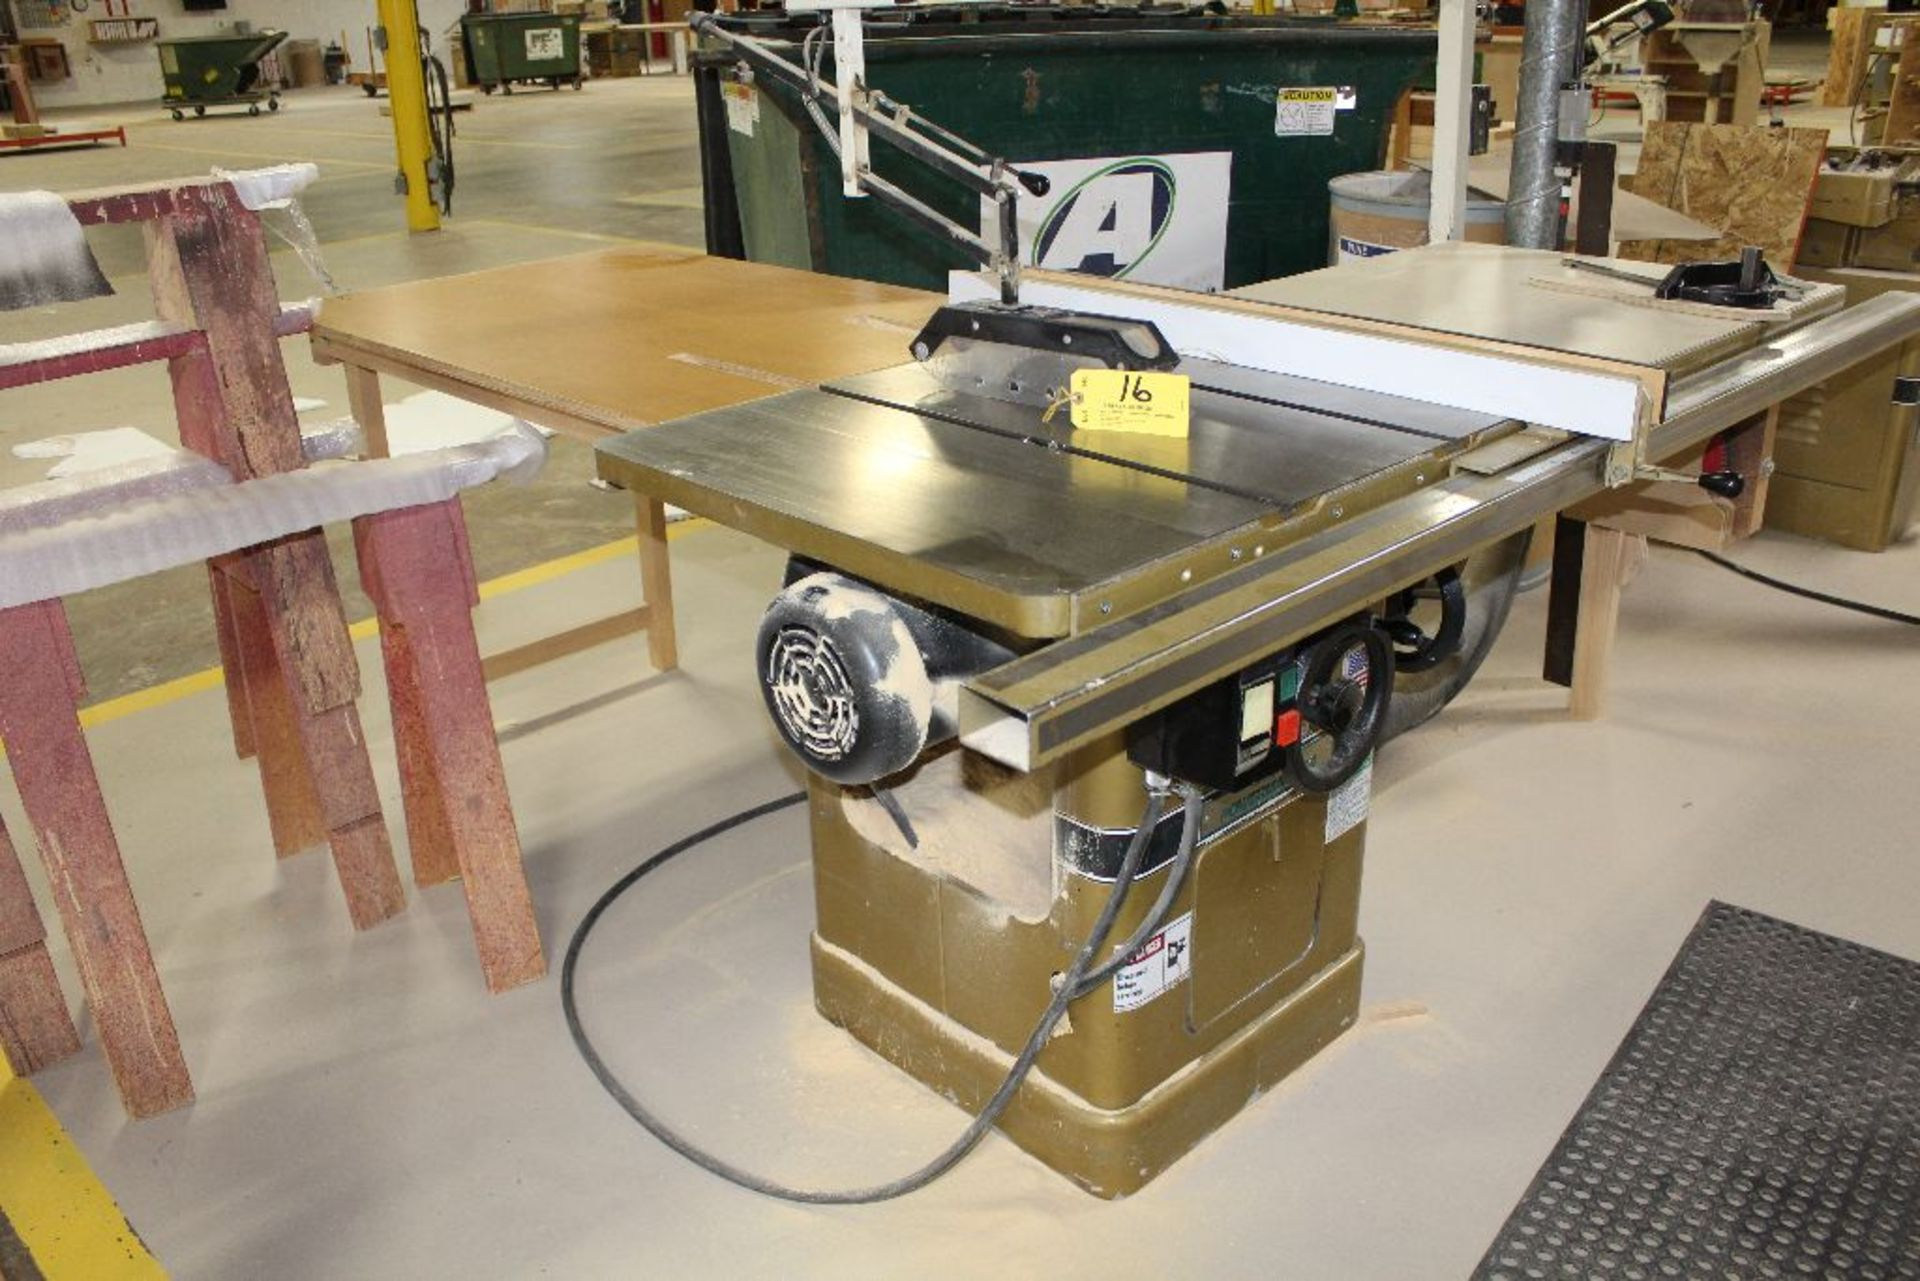 "Lot 016 - Powermatic tablesaw, model 66, sn 94662069, 6"", w/Biesemeyer Guard system, 5 hp., voltage 230/460."